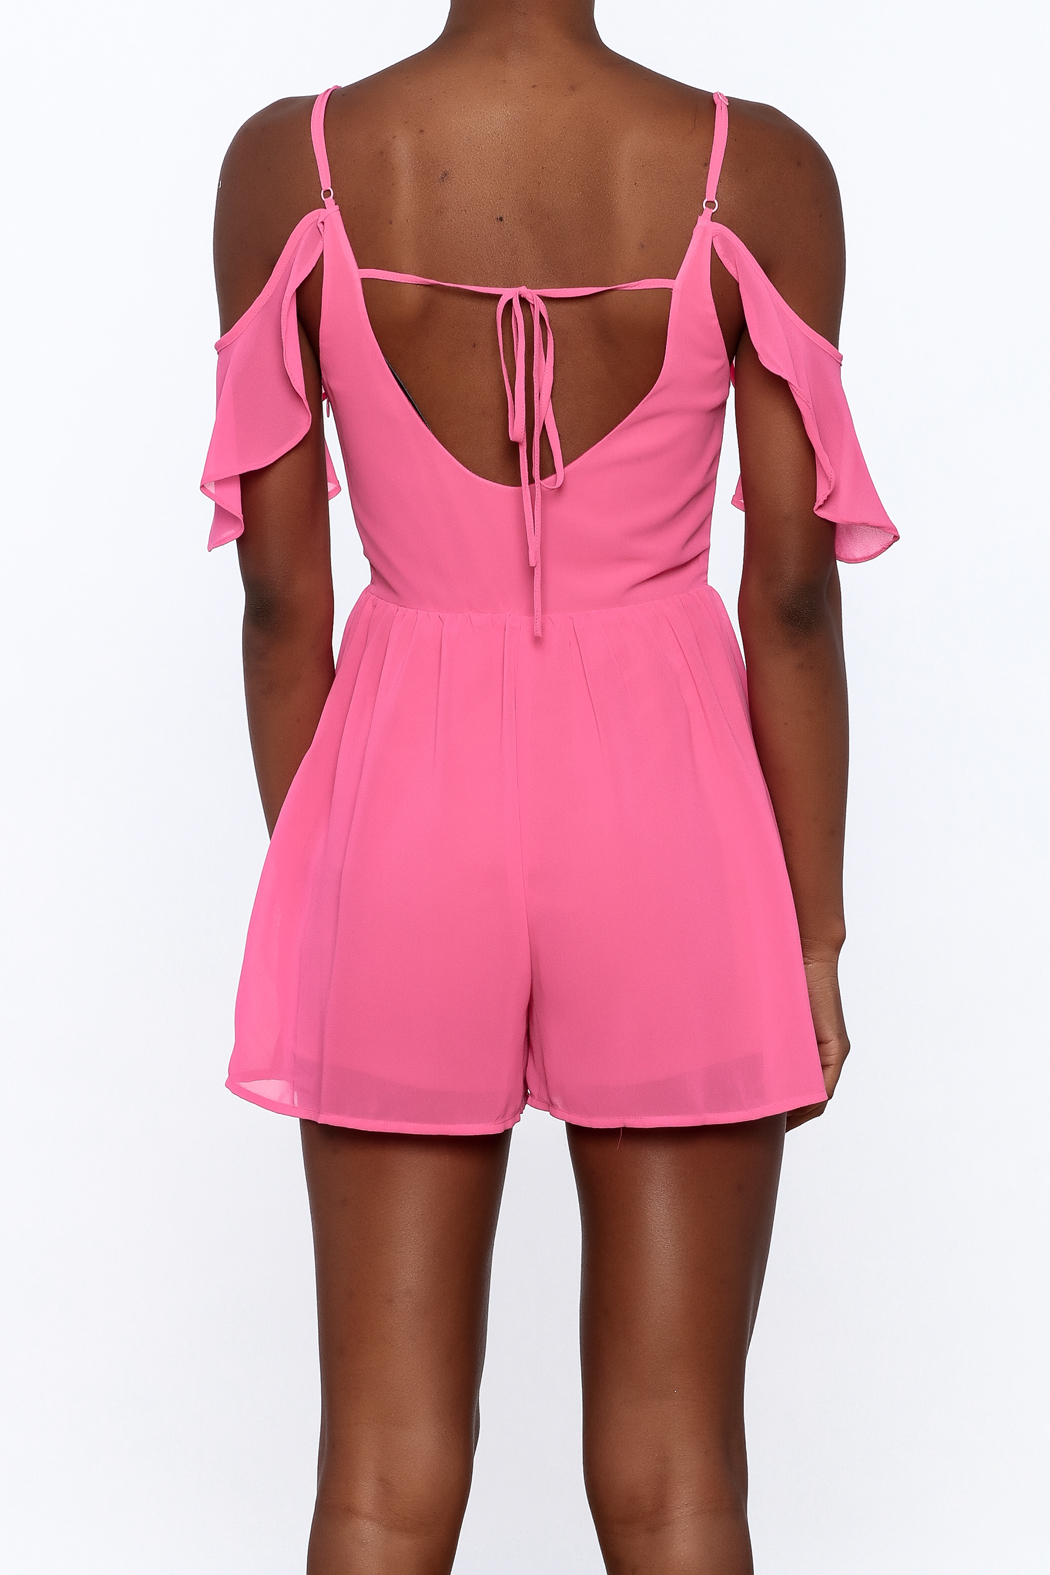 HYFVE Pink Ruffle Romper - Back Cropped Image